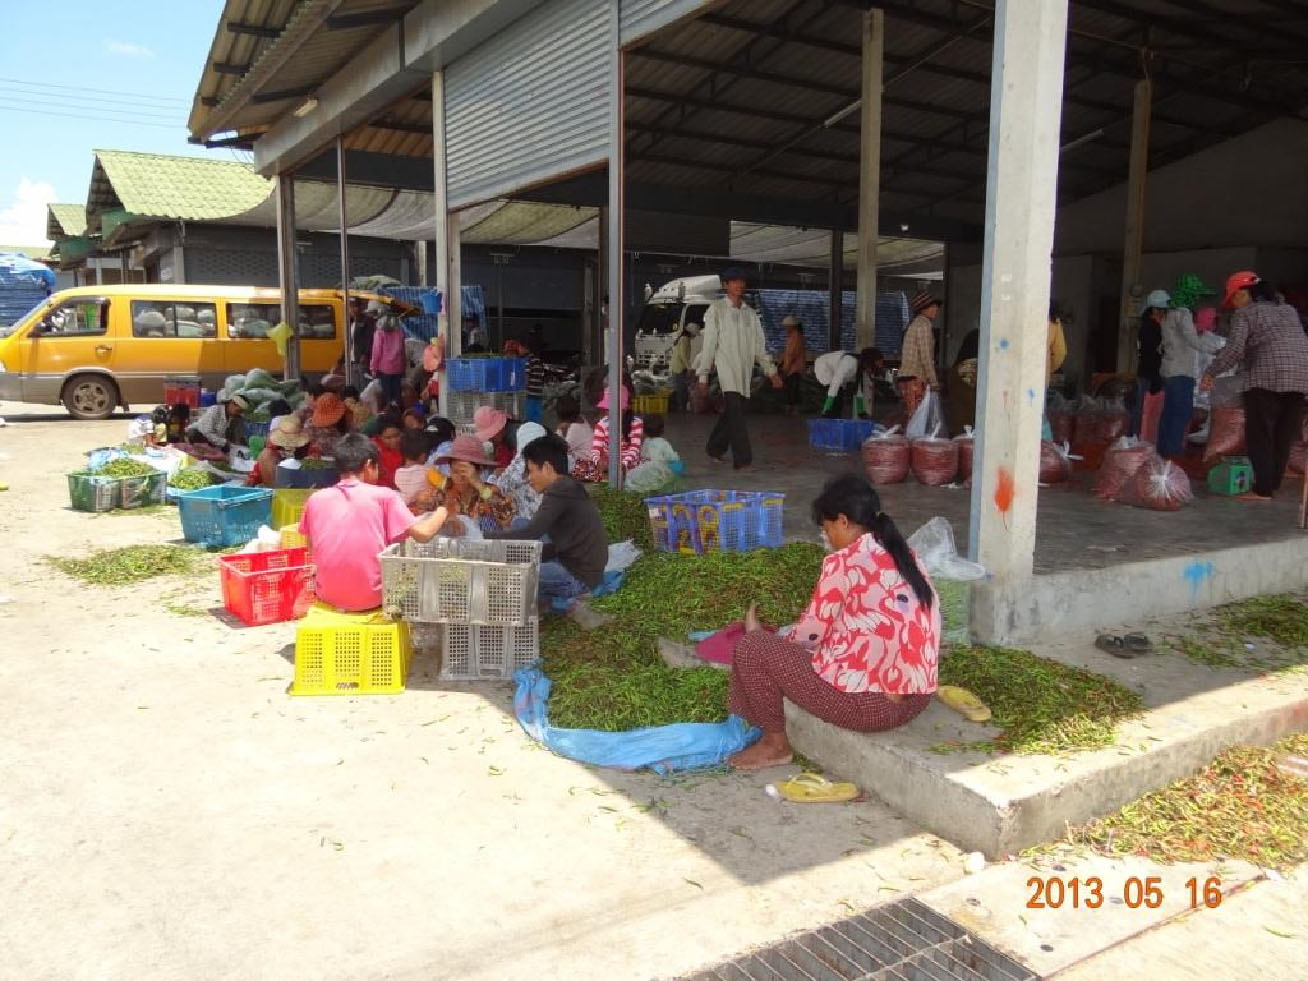 ... Thai side of the border, Khmer workers clean and process chili peppers